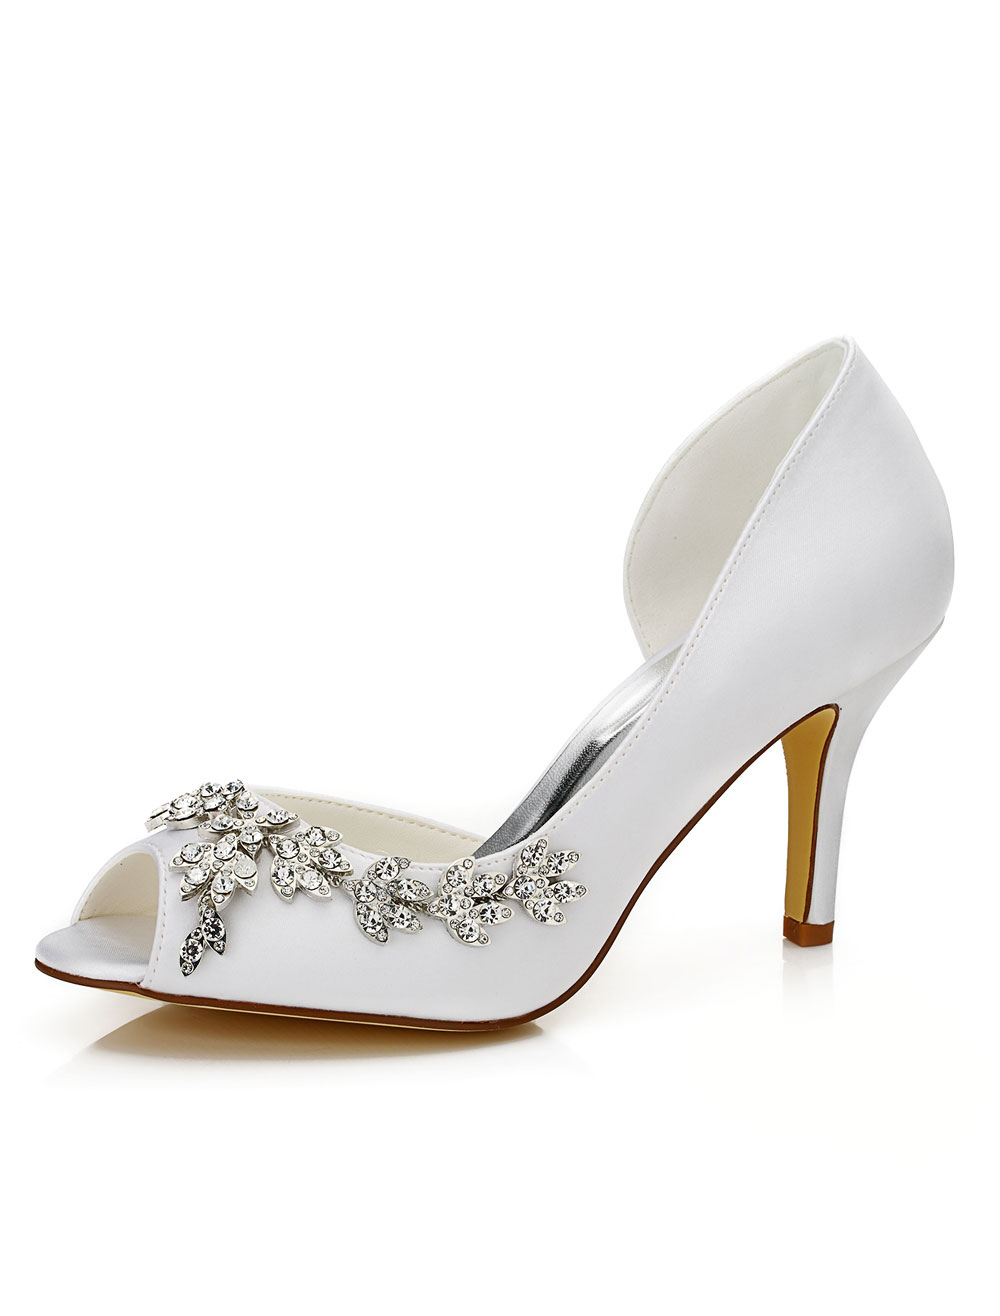 Peep Wedding Shoes White Jeweled Cut-out Slip-on High Heel Bridal Shoes